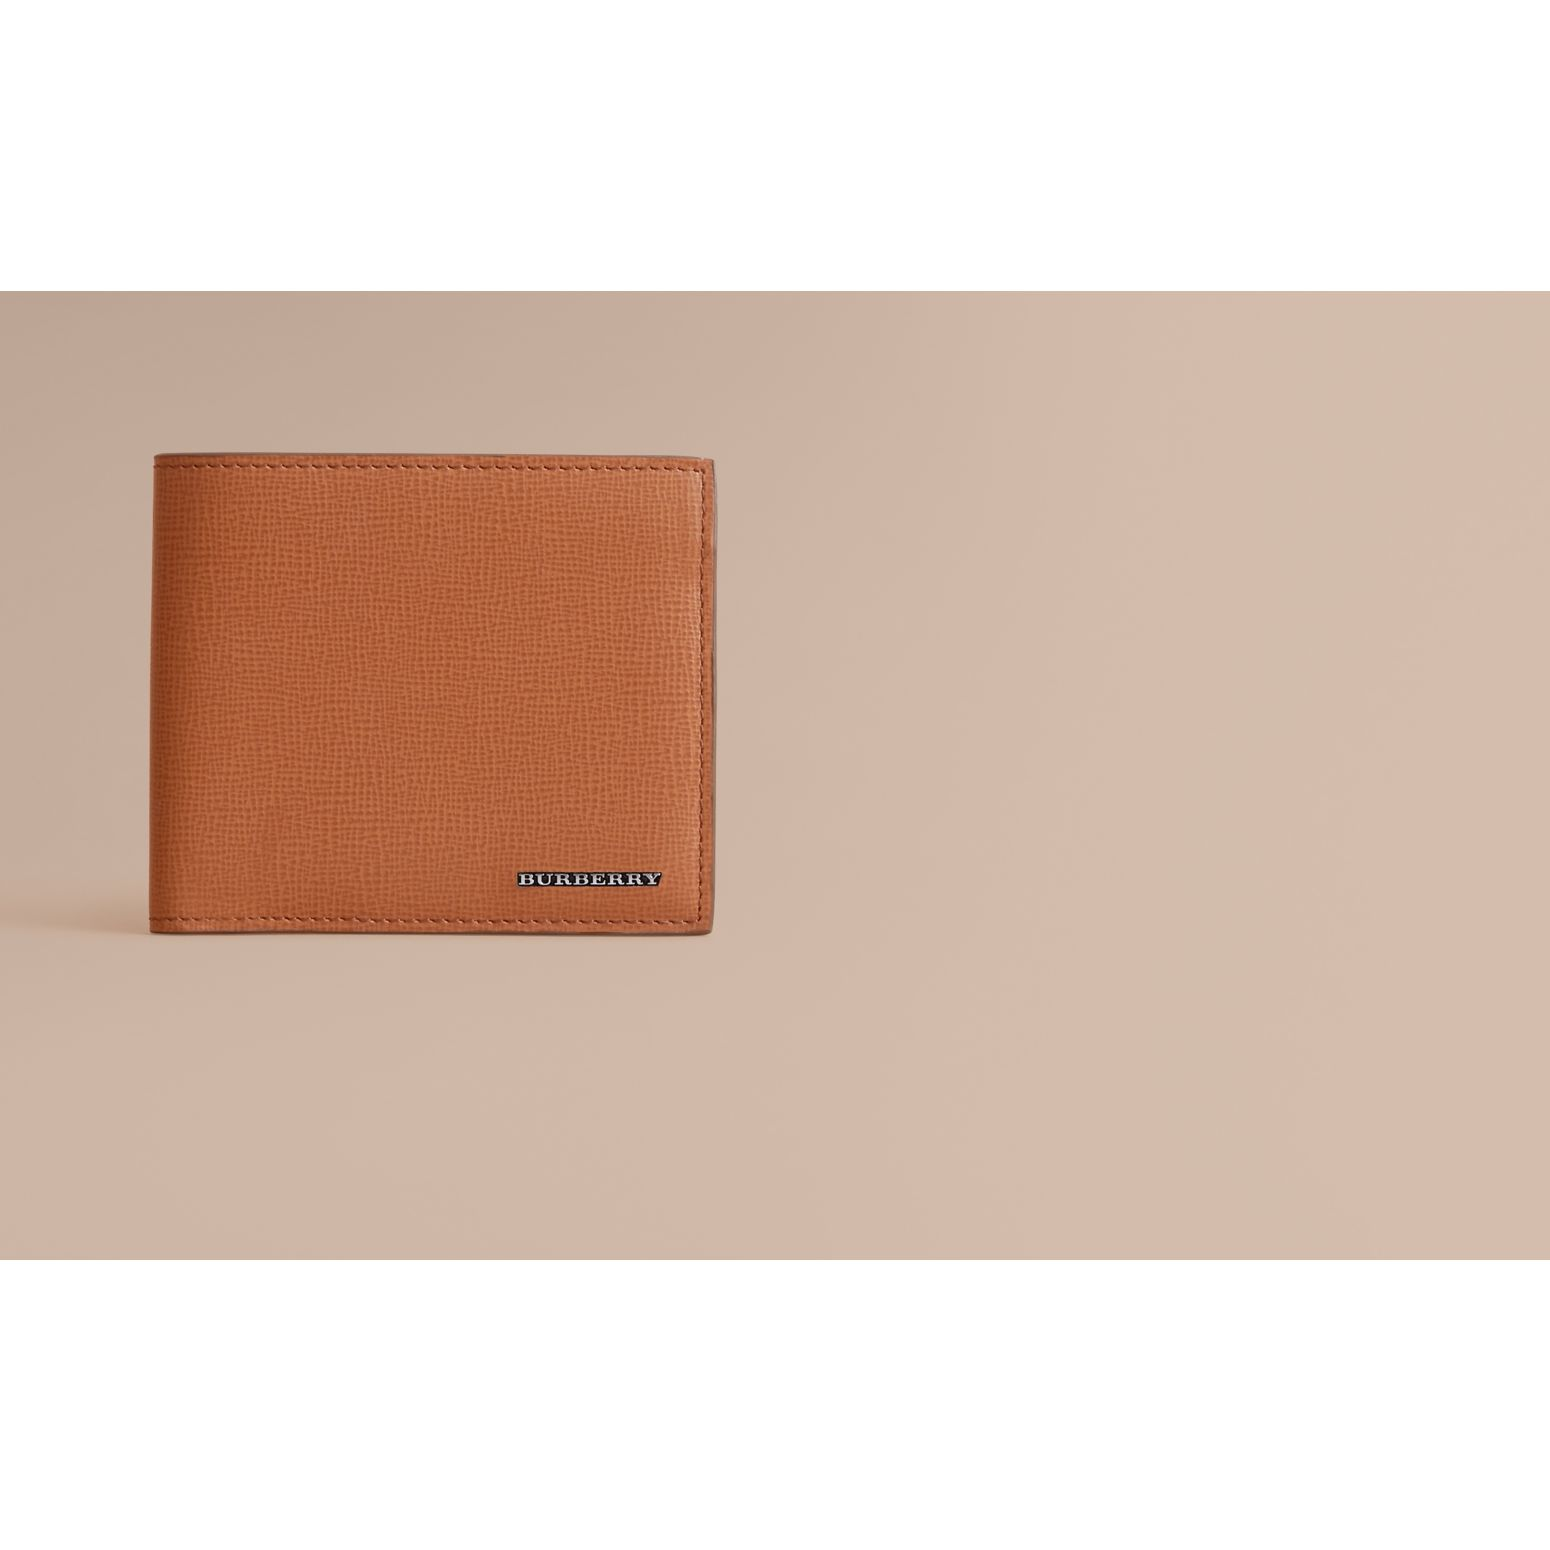 London Leather International Bifold Wallet in Tan | Burberry Australia - gallery image 2